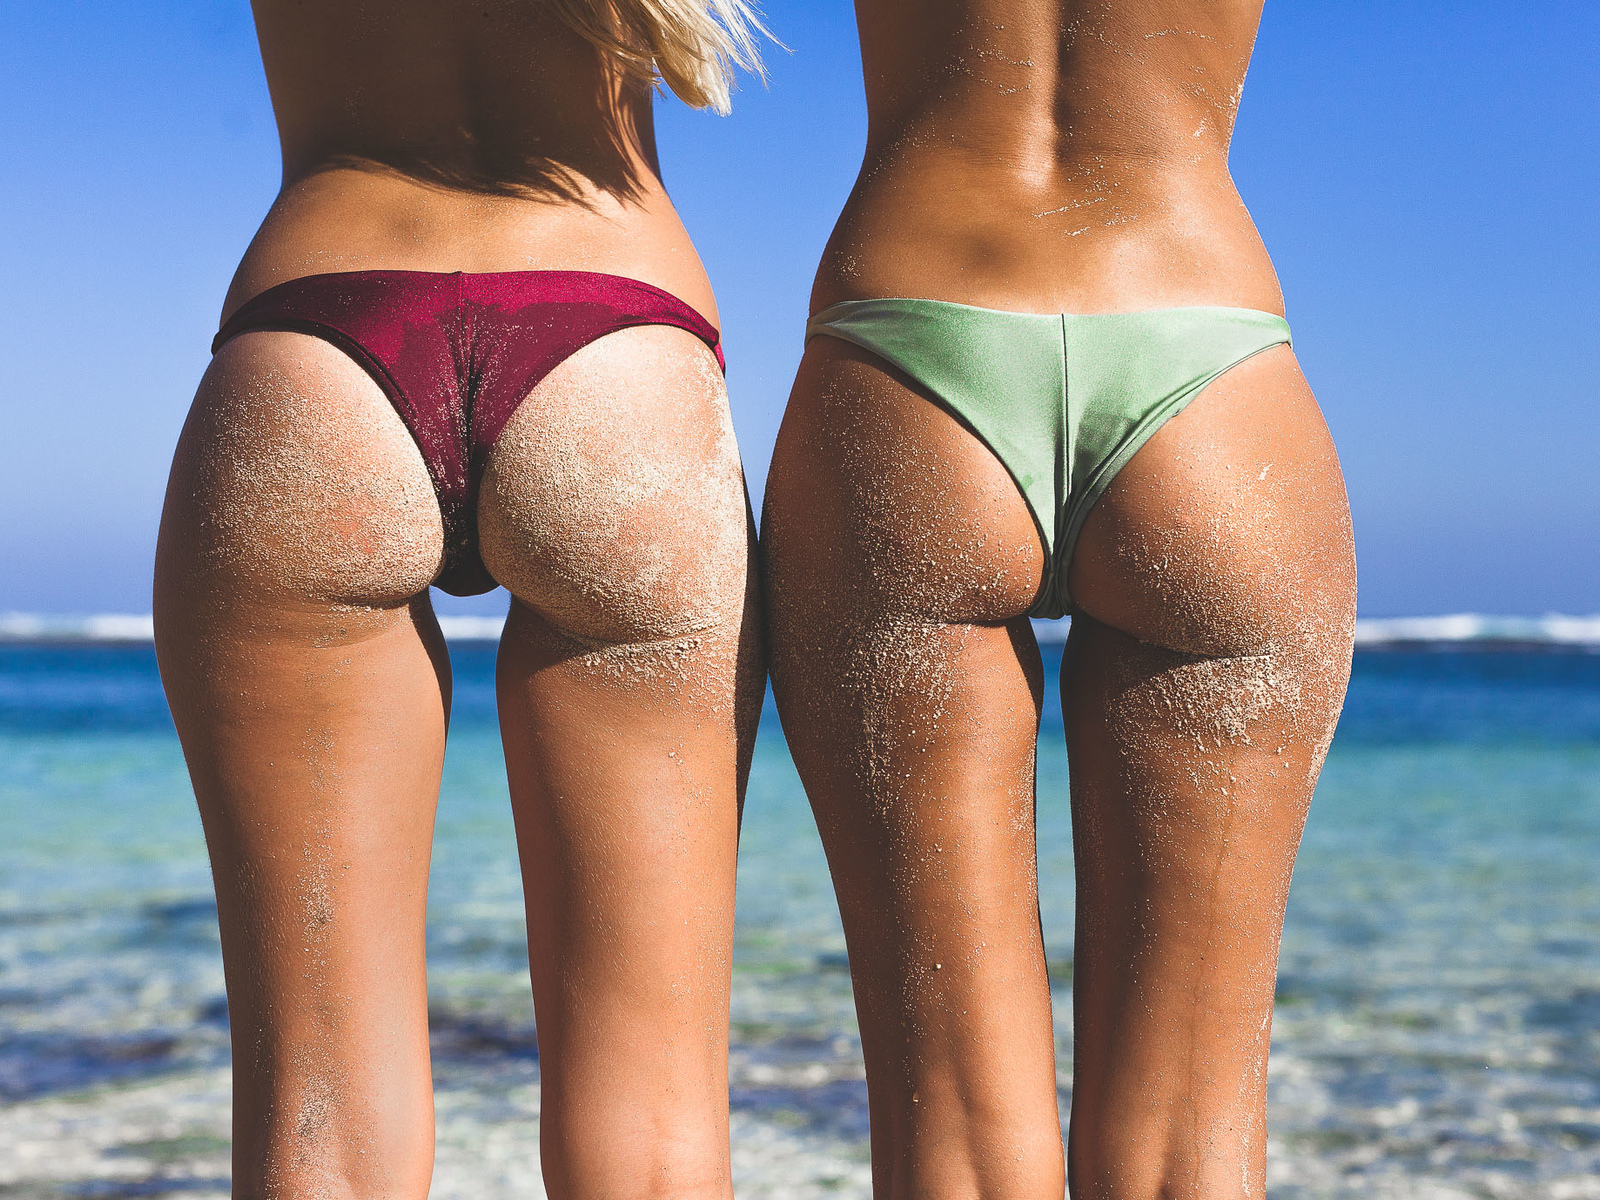 two girls, asses